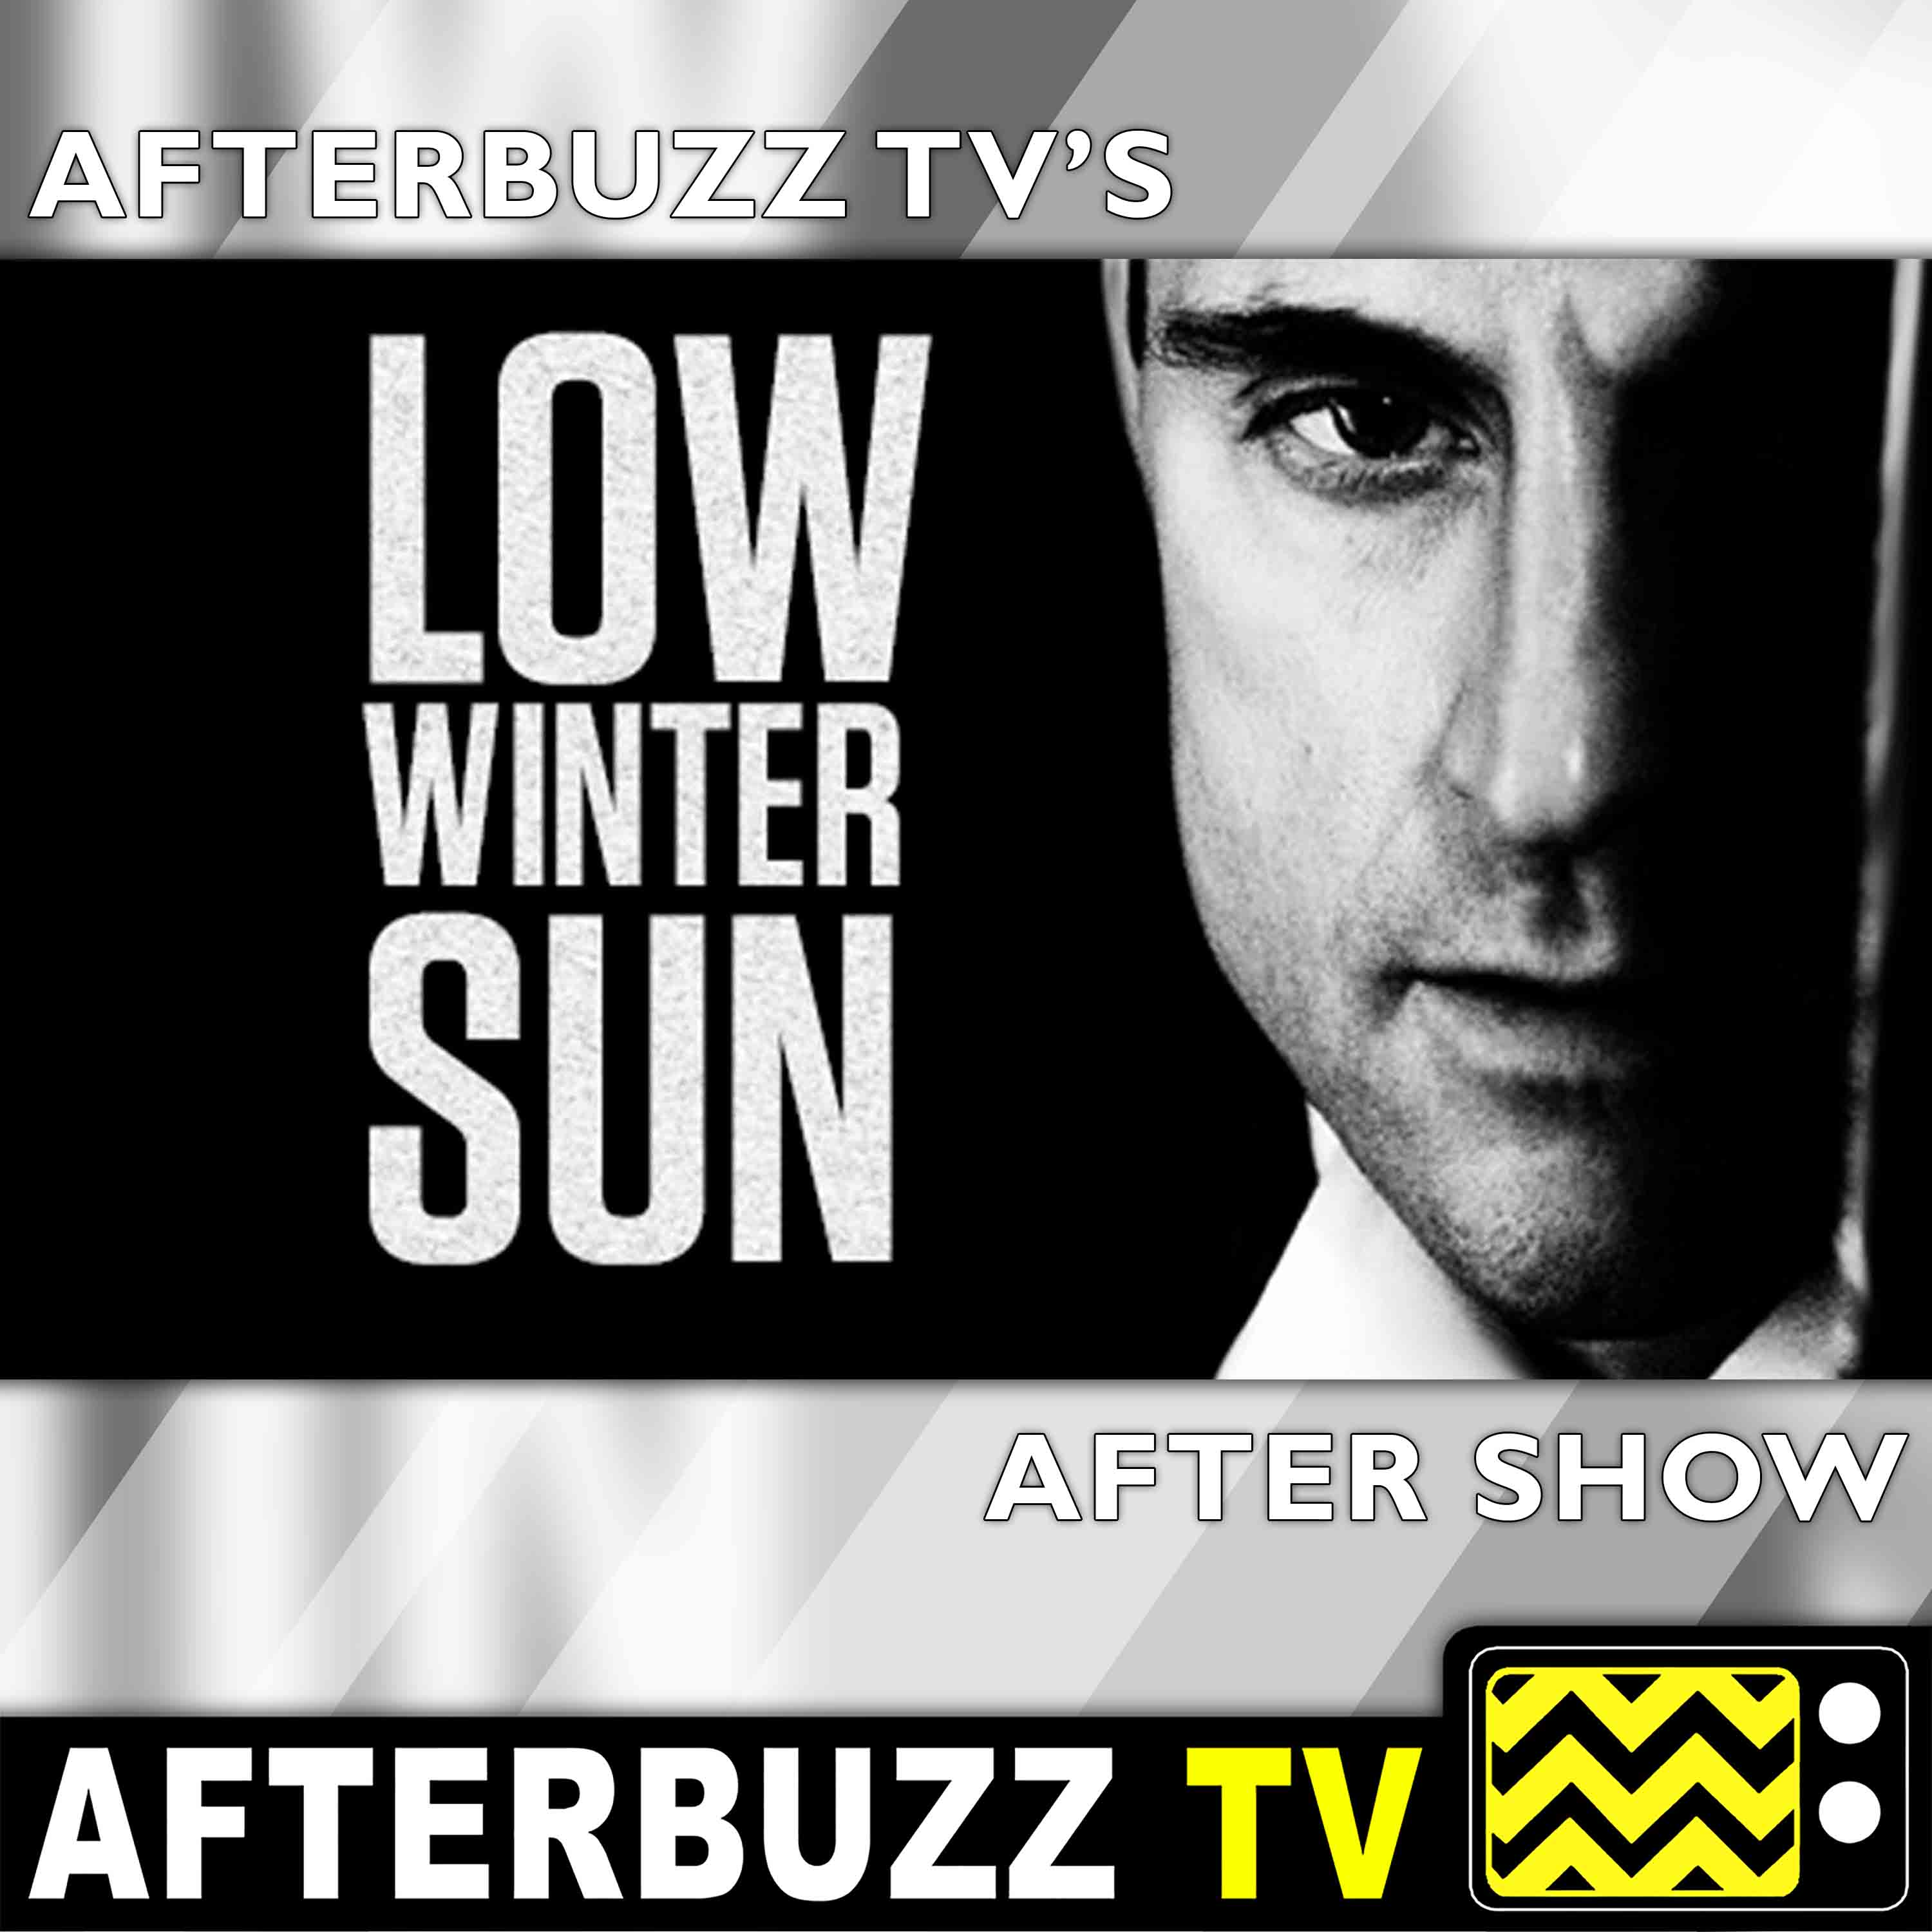 Low Winter Sun Reviews & After Show